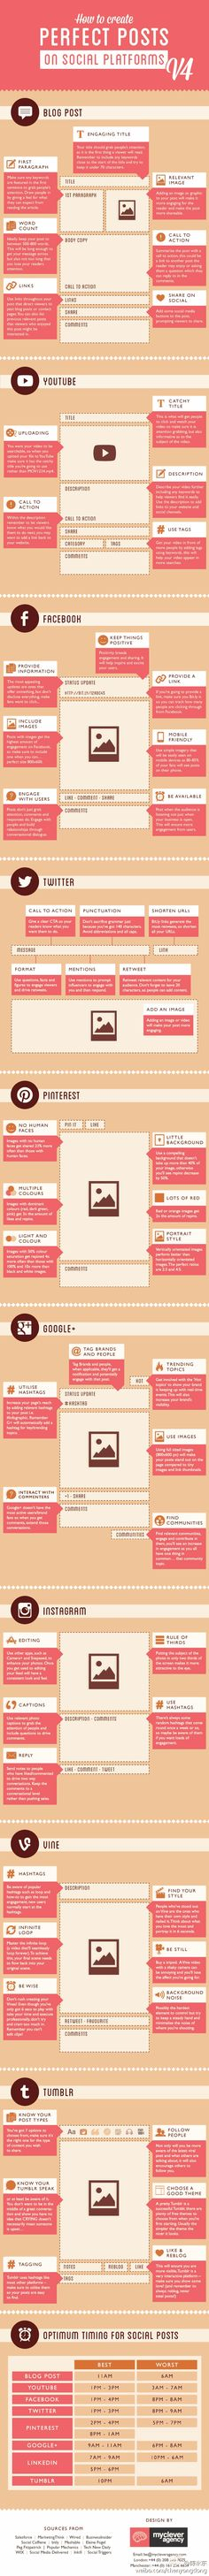 How to create social media posts. #infographic